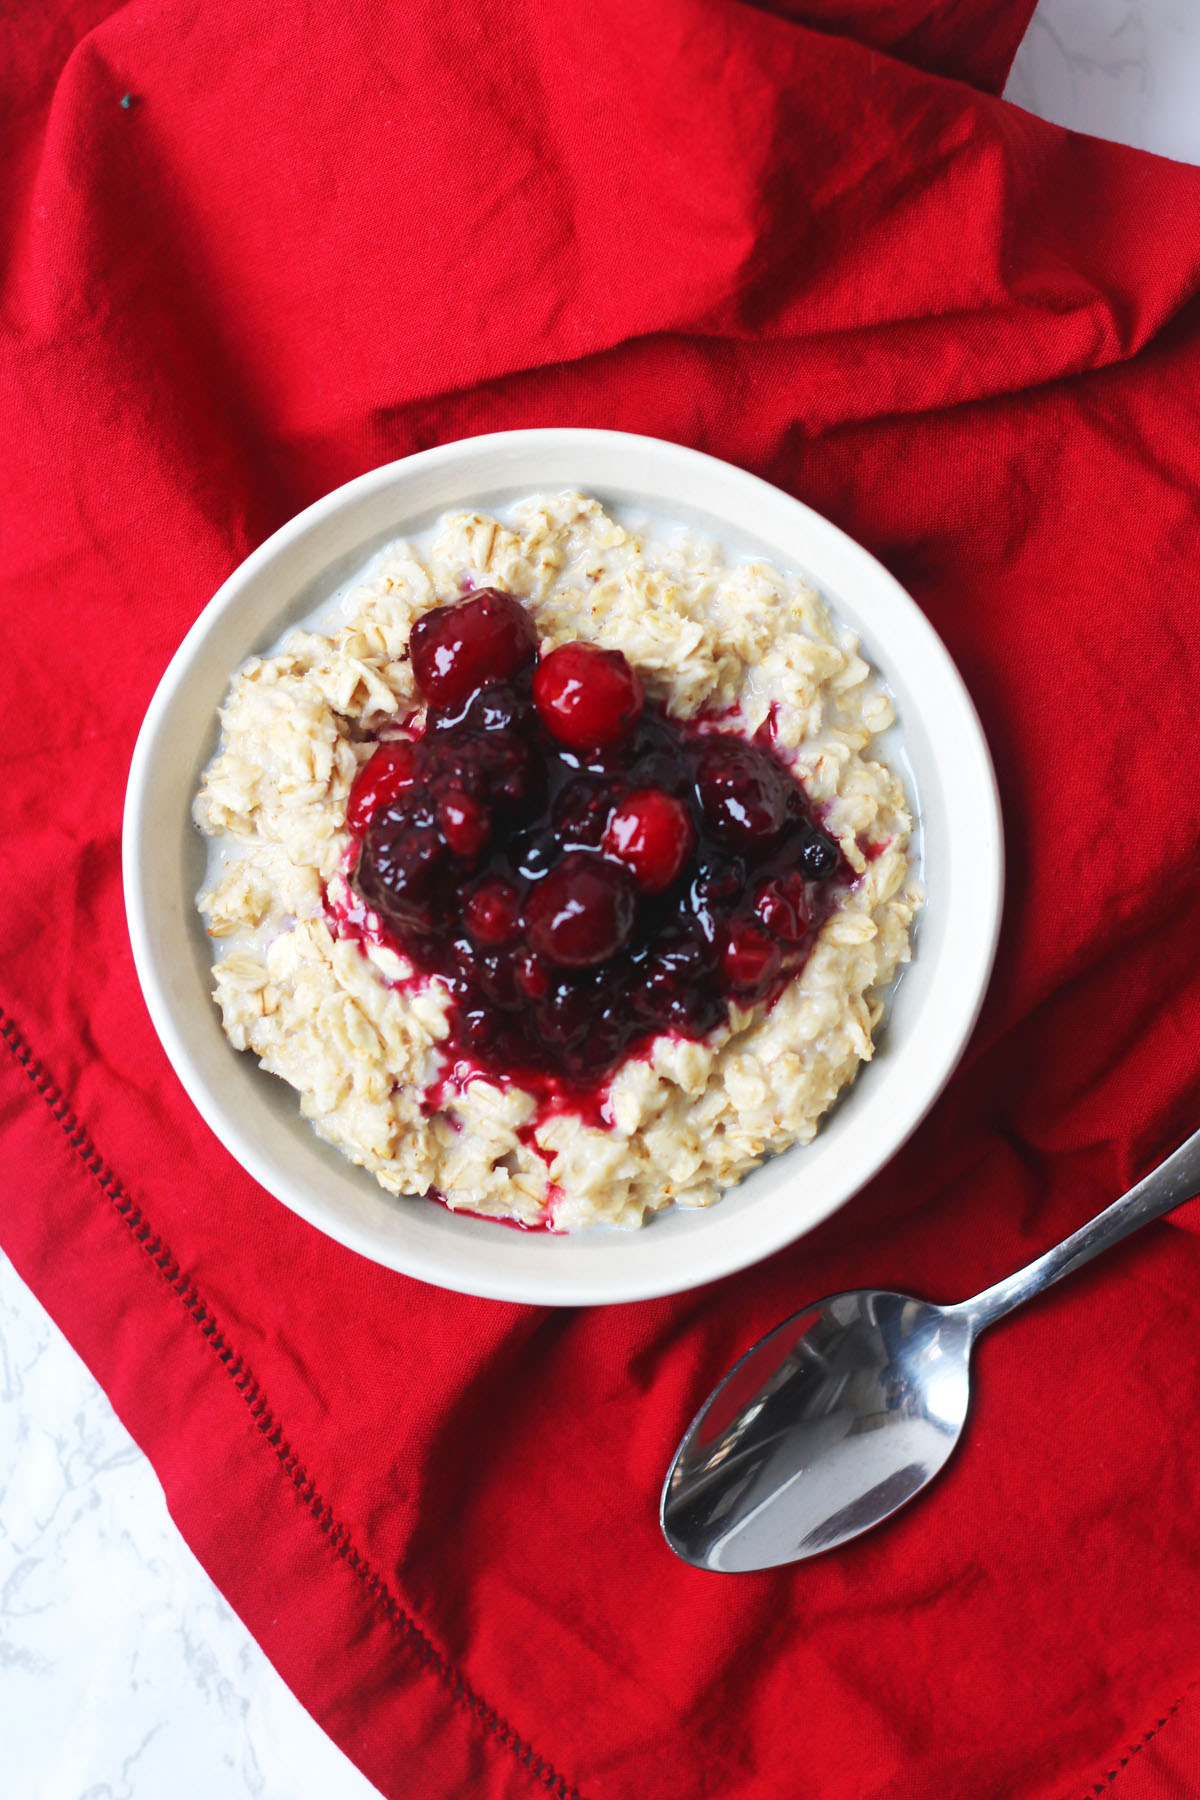 Aerial shot of a bowl of porridge topped with spiced berry compote